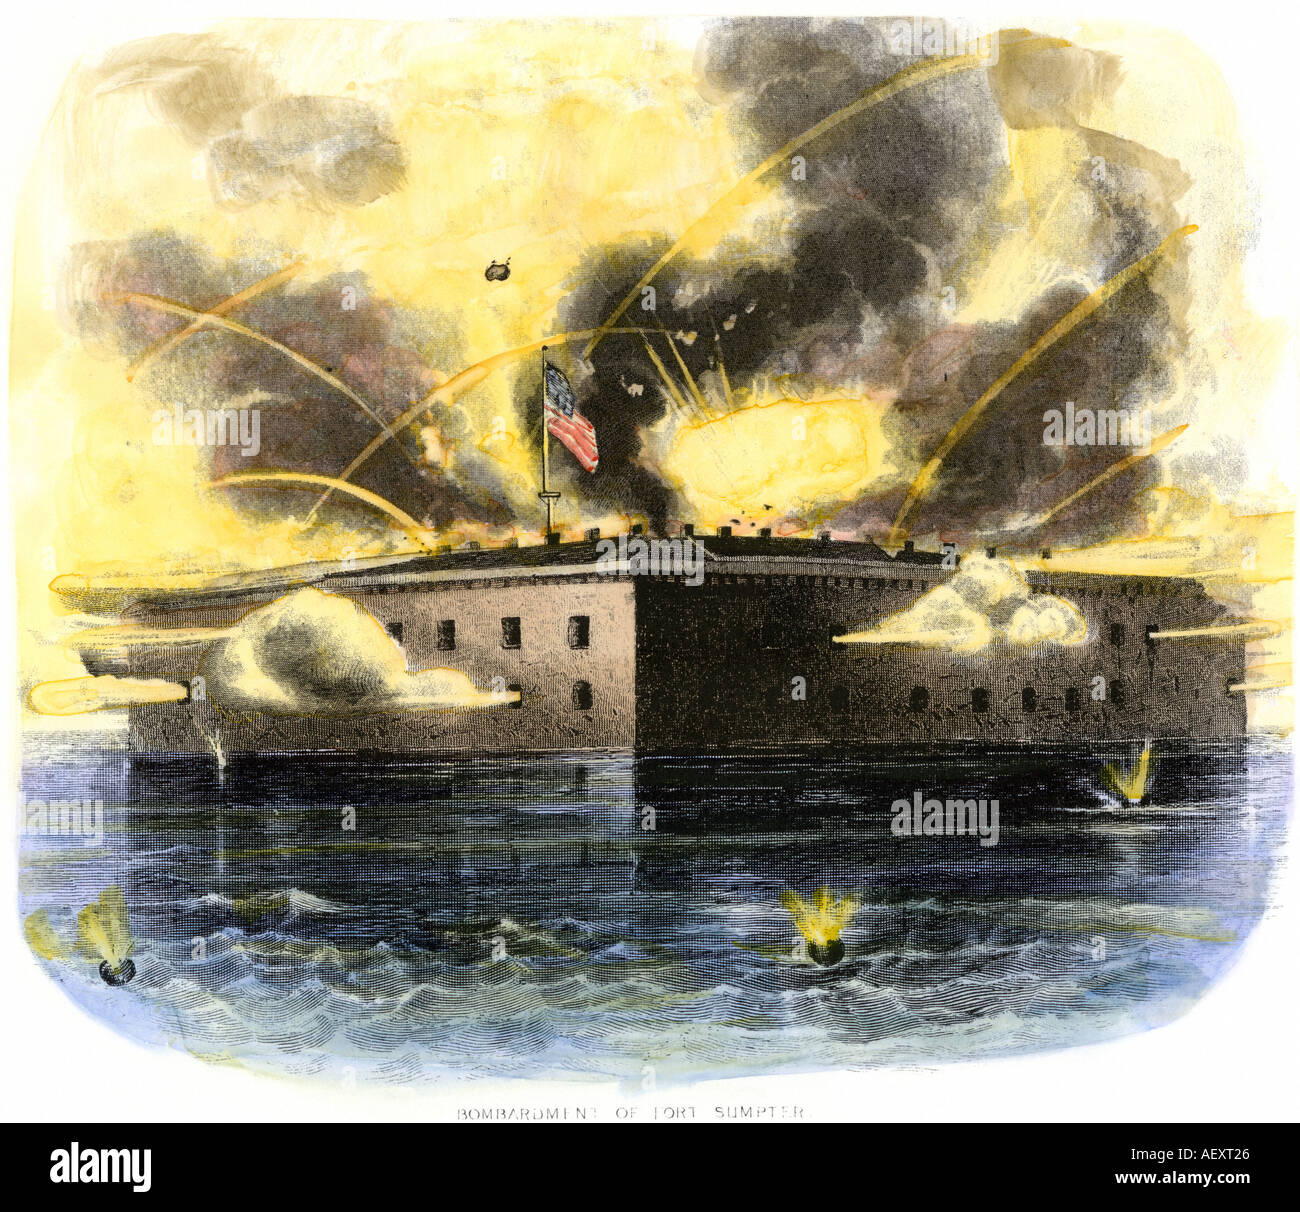 Confederate bombardment of Fort Sumter in Charleston  harbor April 1861. Hand-colored engraving - Stock Image